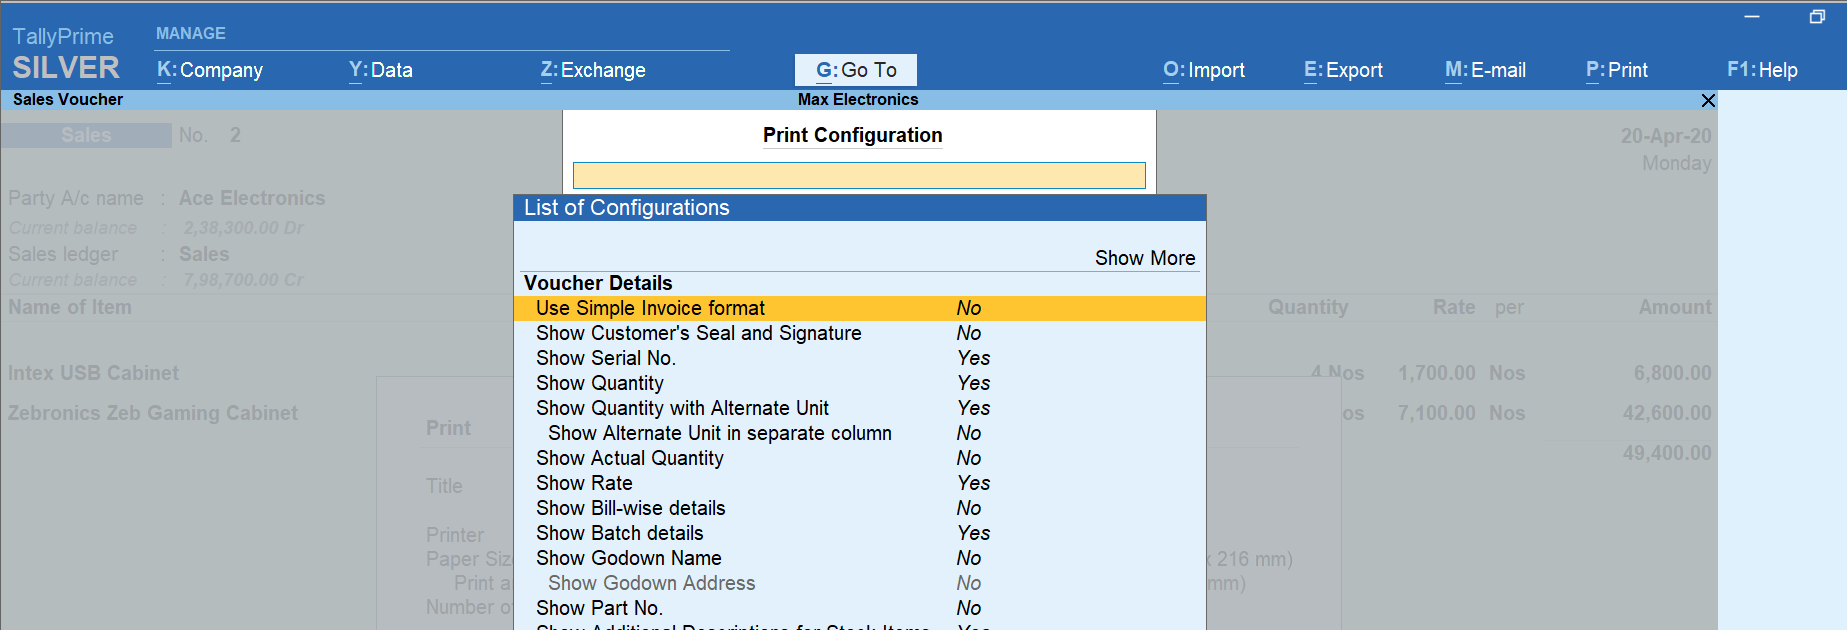 invoice configurations and options in TallyPrime Bahrain